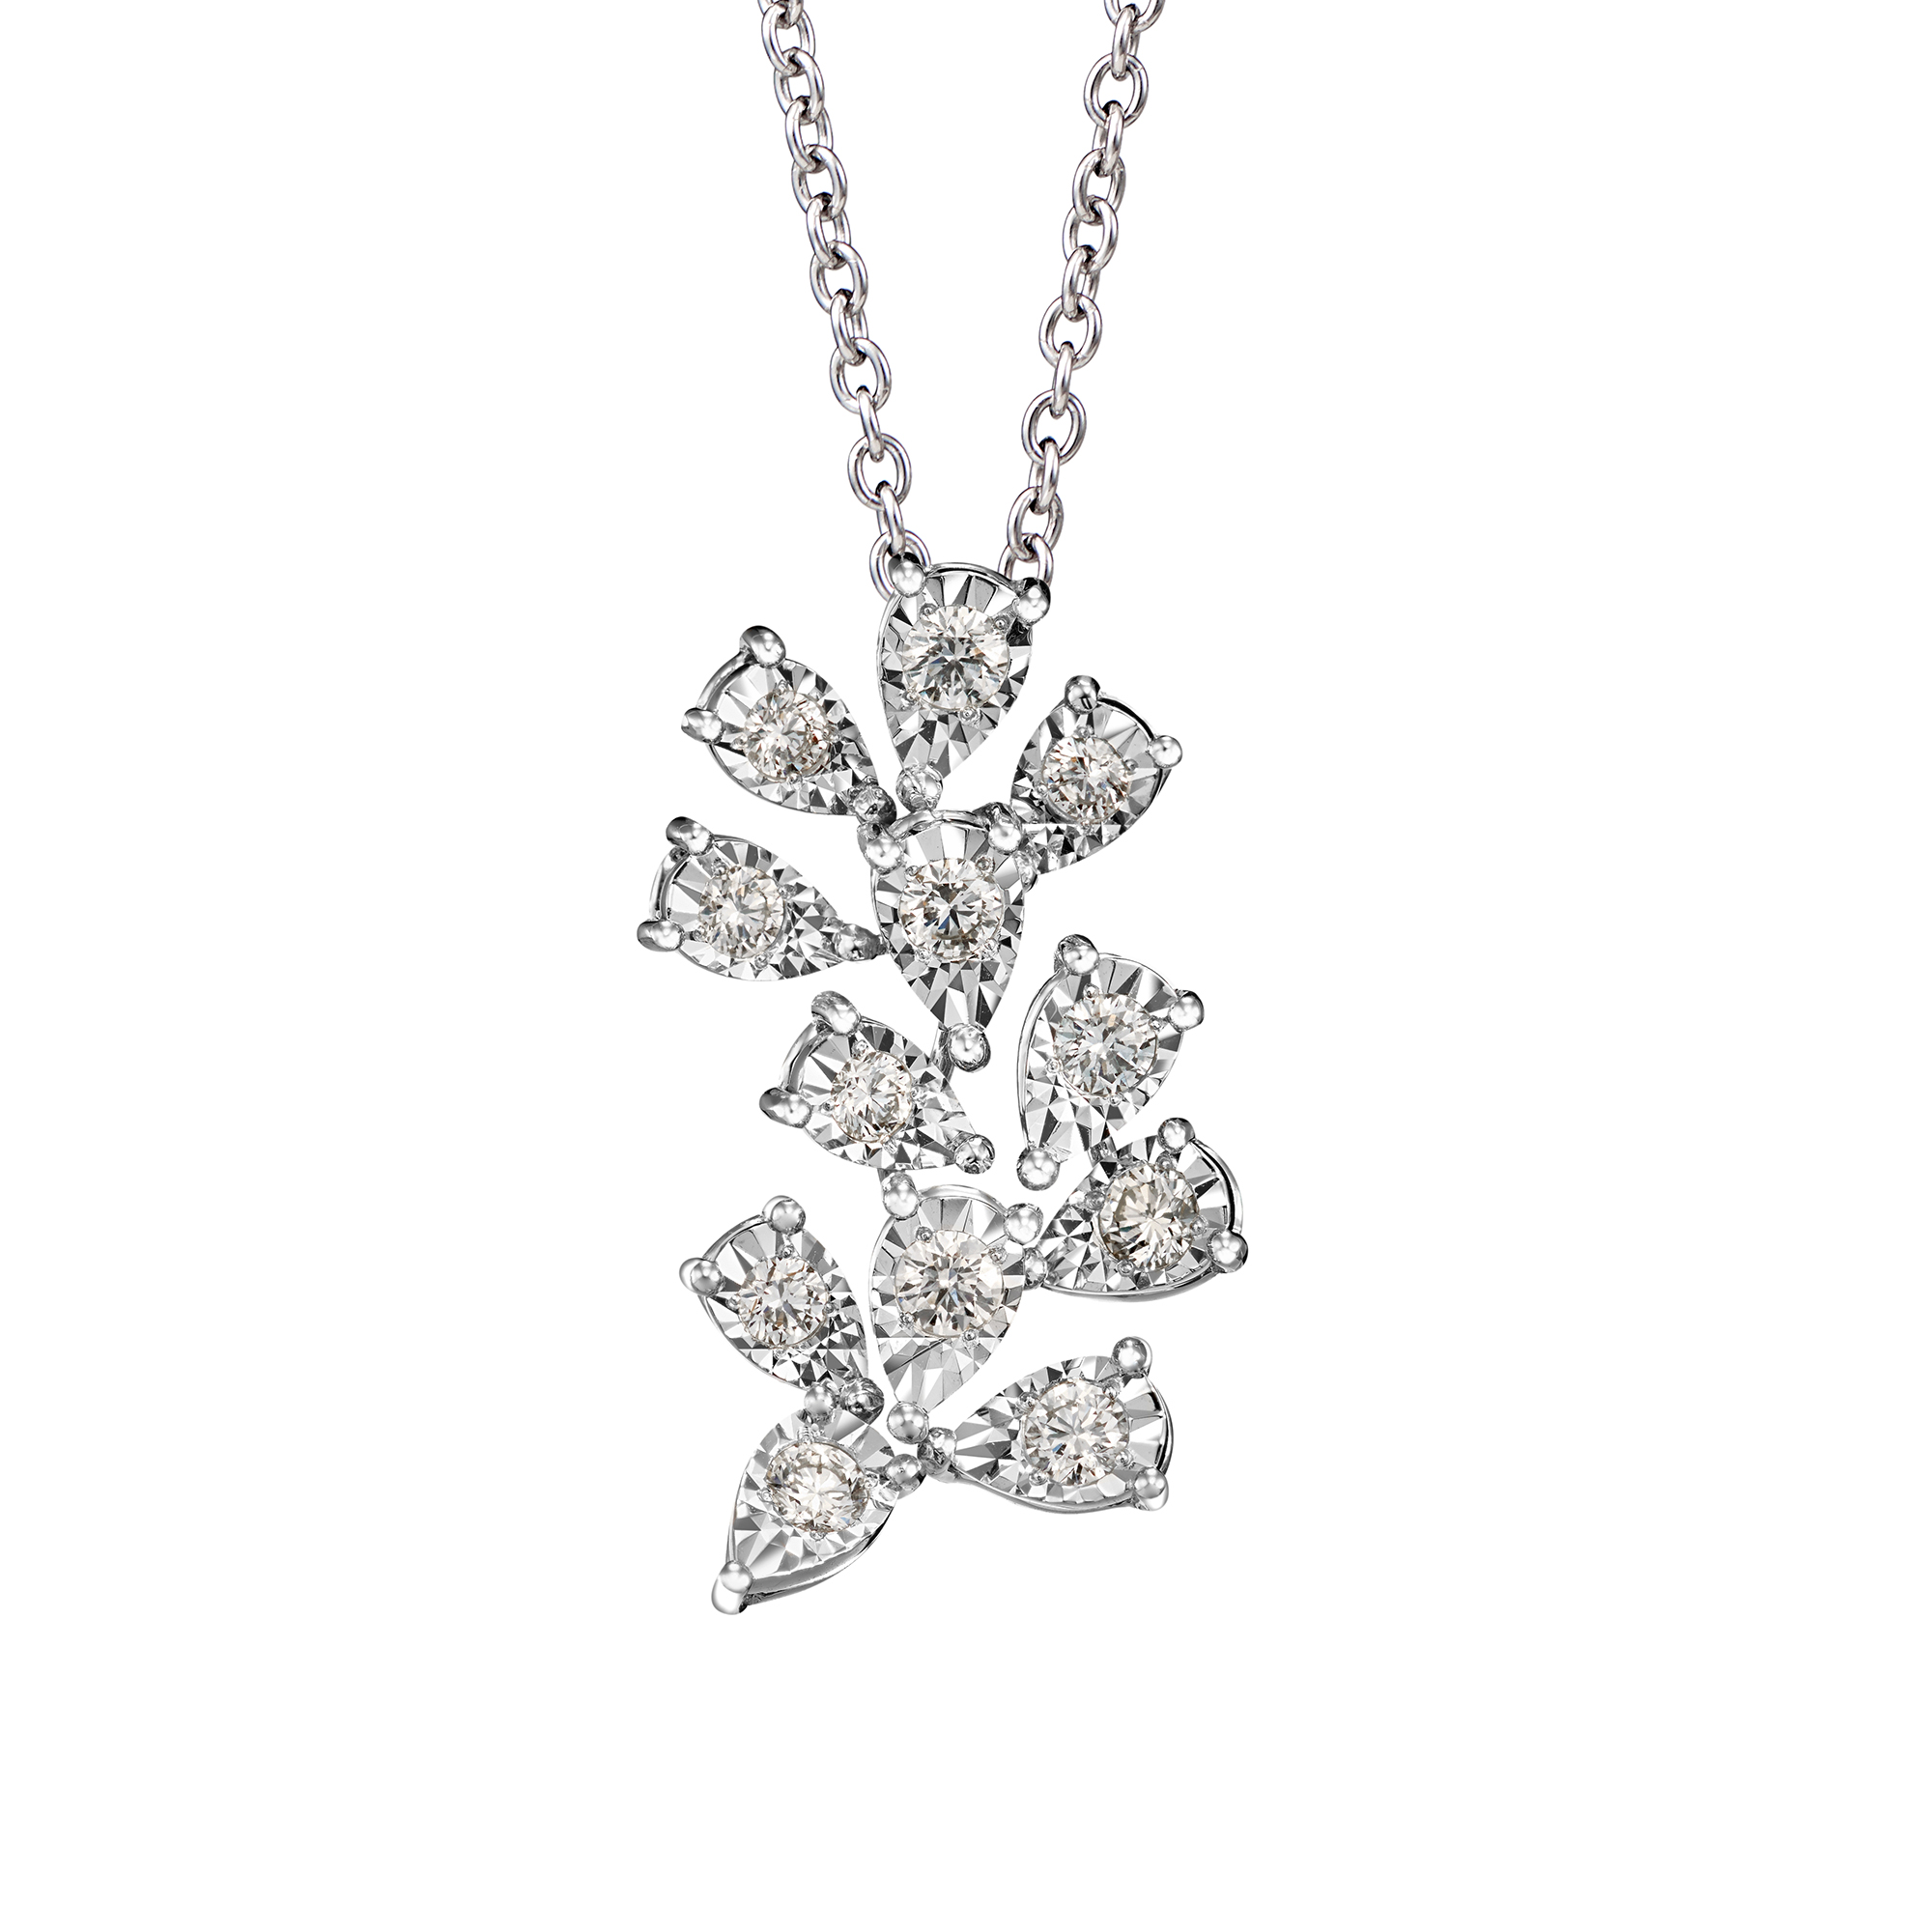 Shining Floral Diamond Necklace